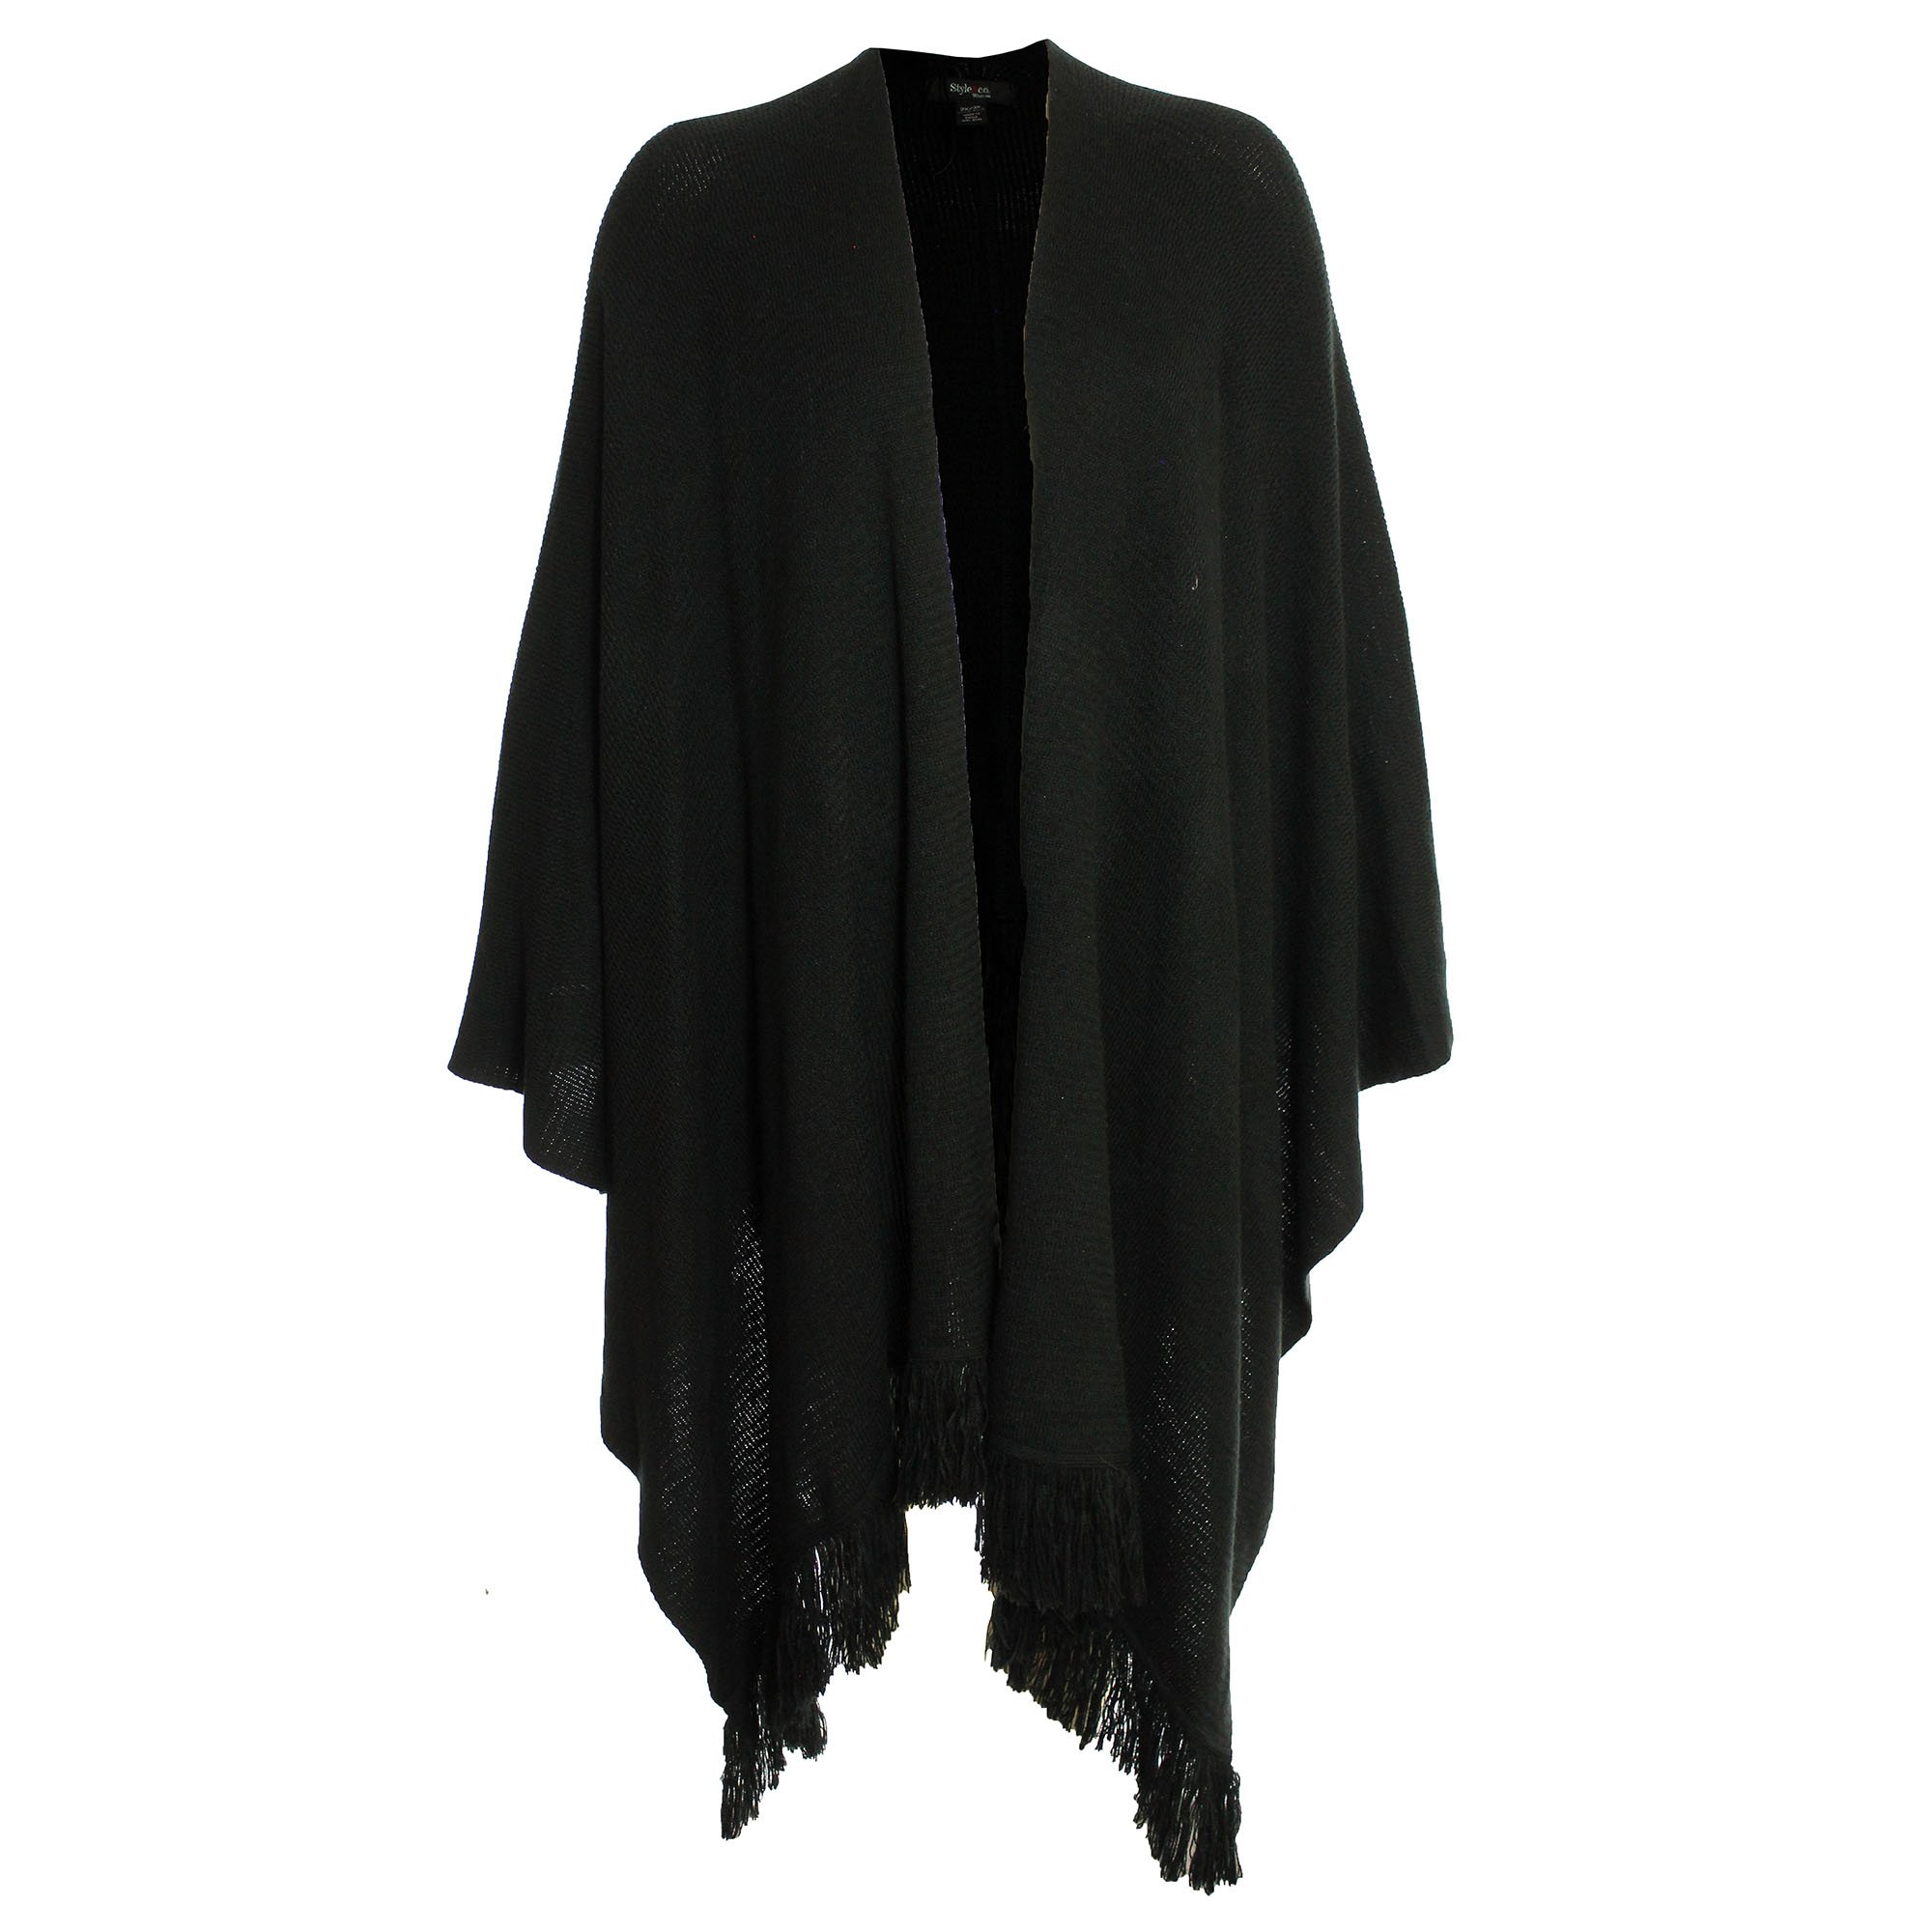 Style & Co. Womens Plus Fringed Open Front Wrap Sweater Black 2X/3X by Greendog